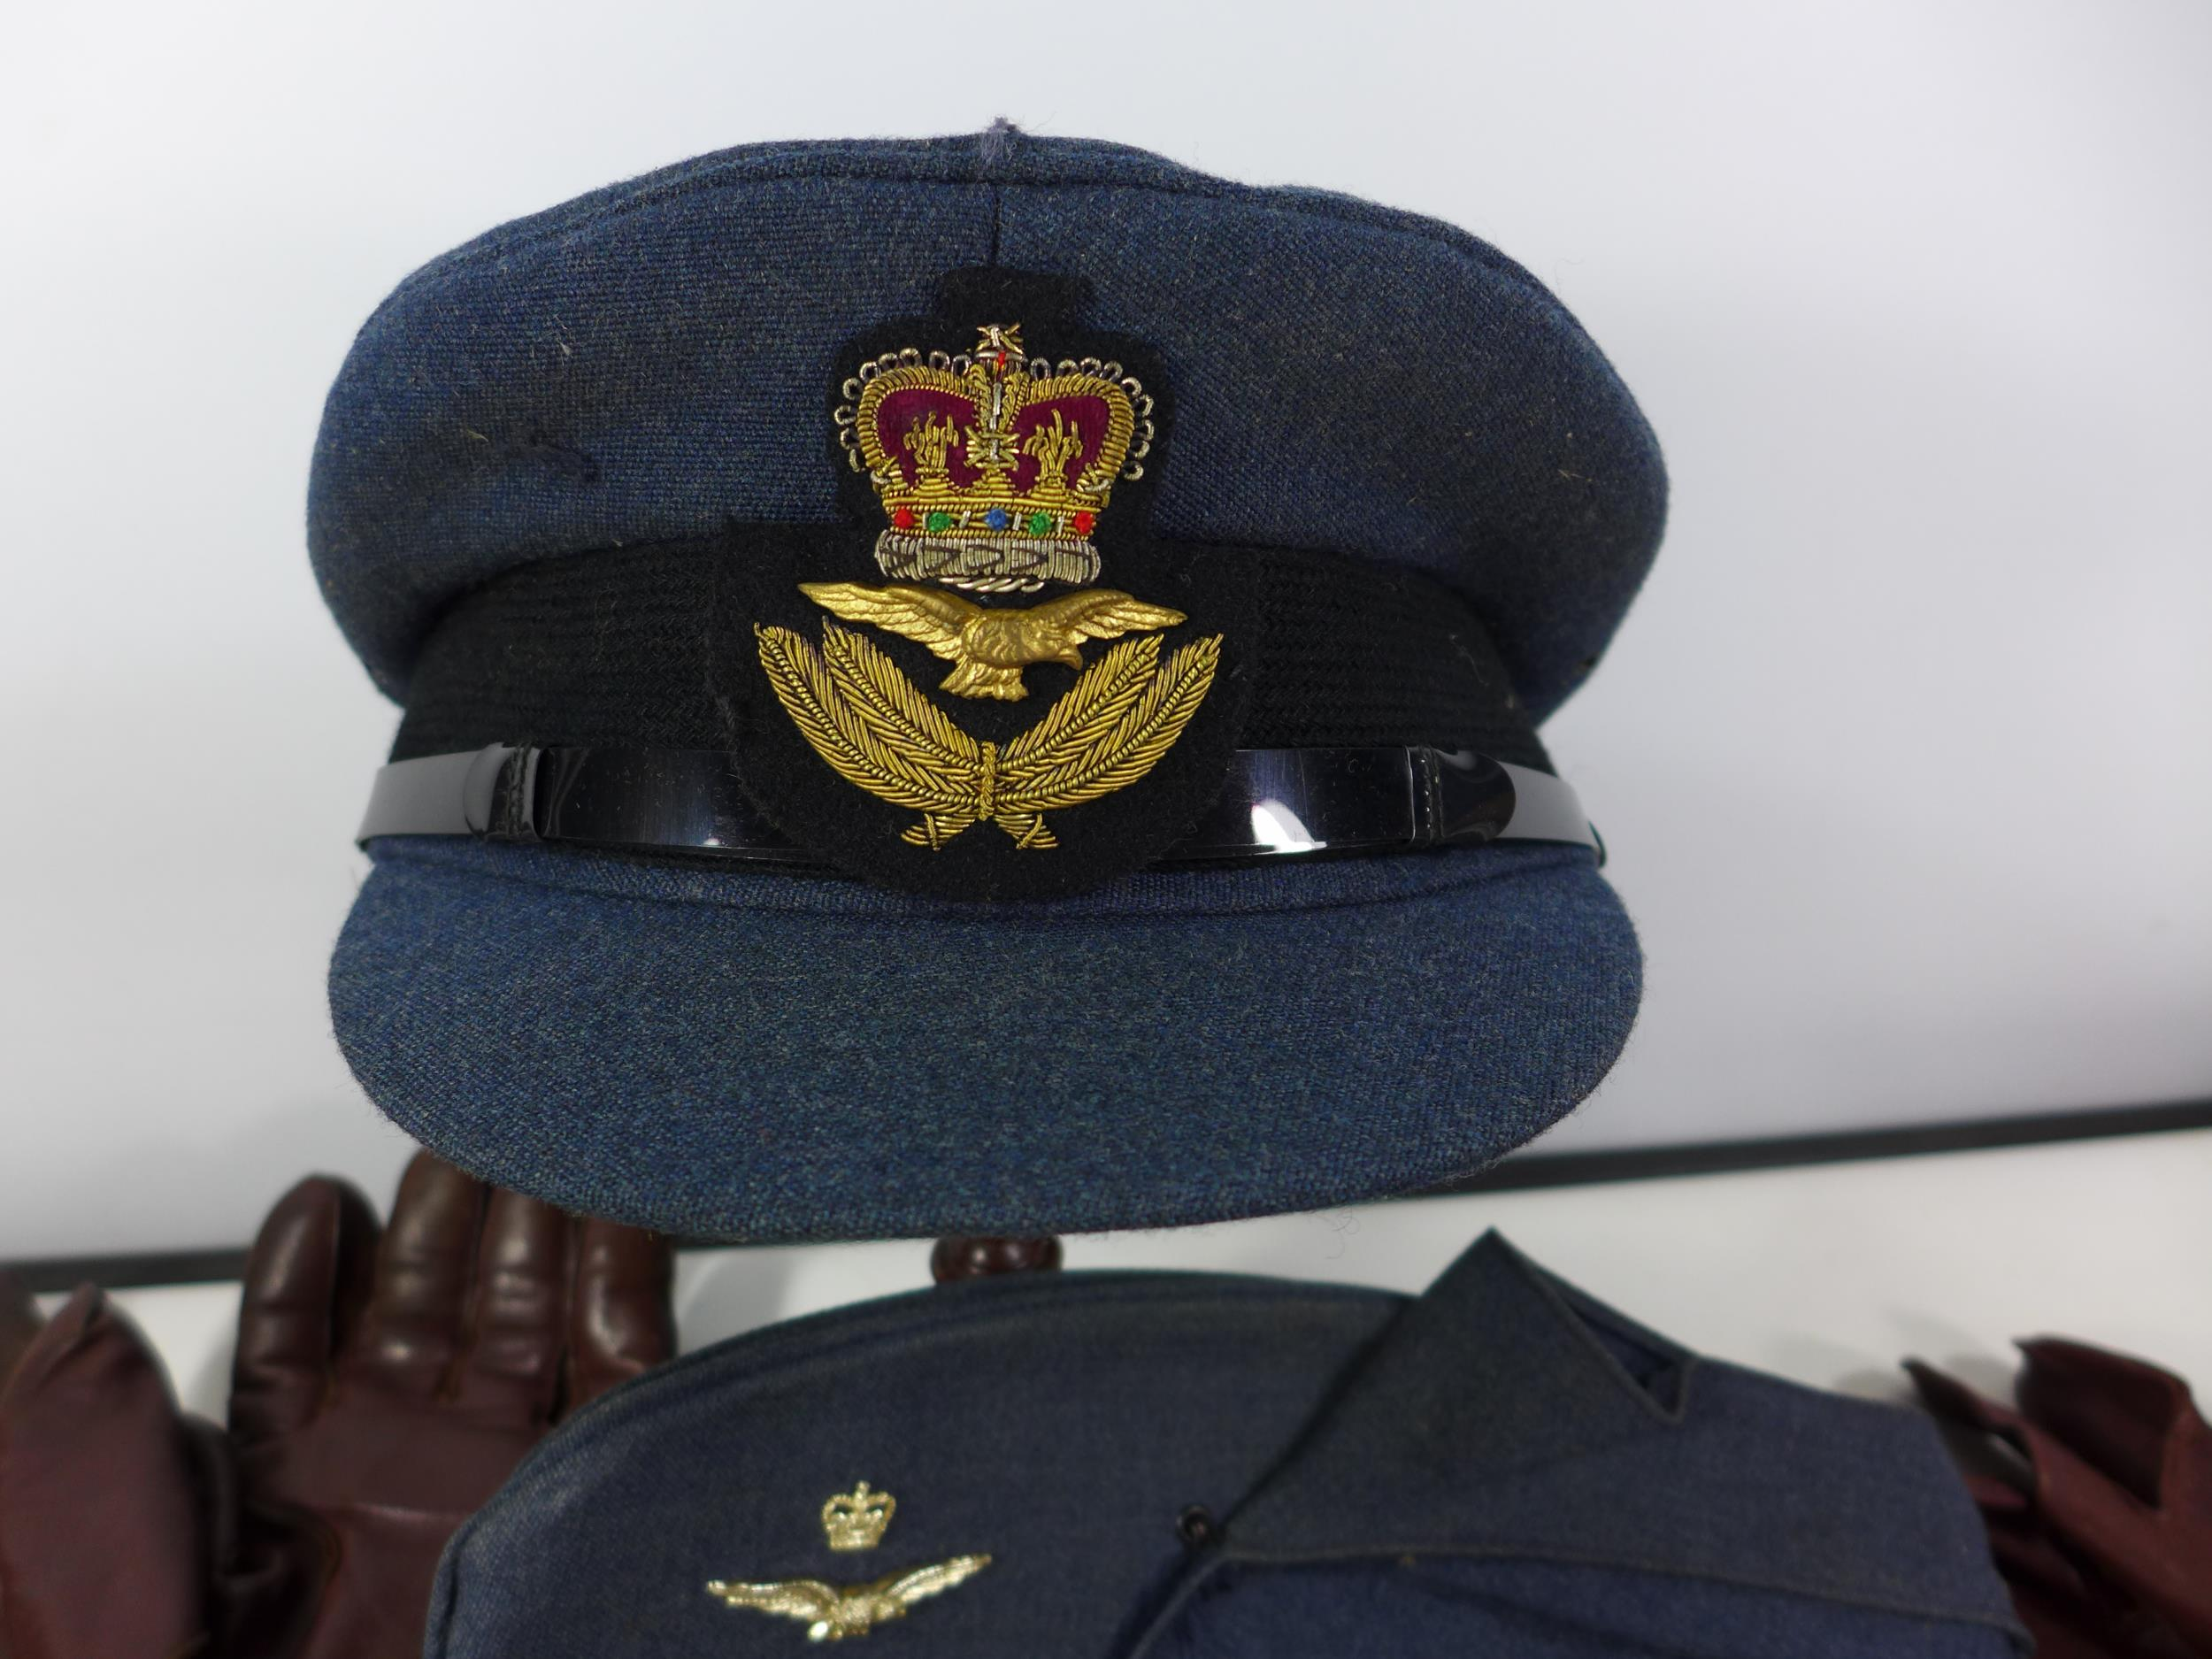 A COLLECTION OF RAF MEMORABILIA COMPRISING CAP, GLOVES, BELTS, FLASHES ETC - Image 2 of 6